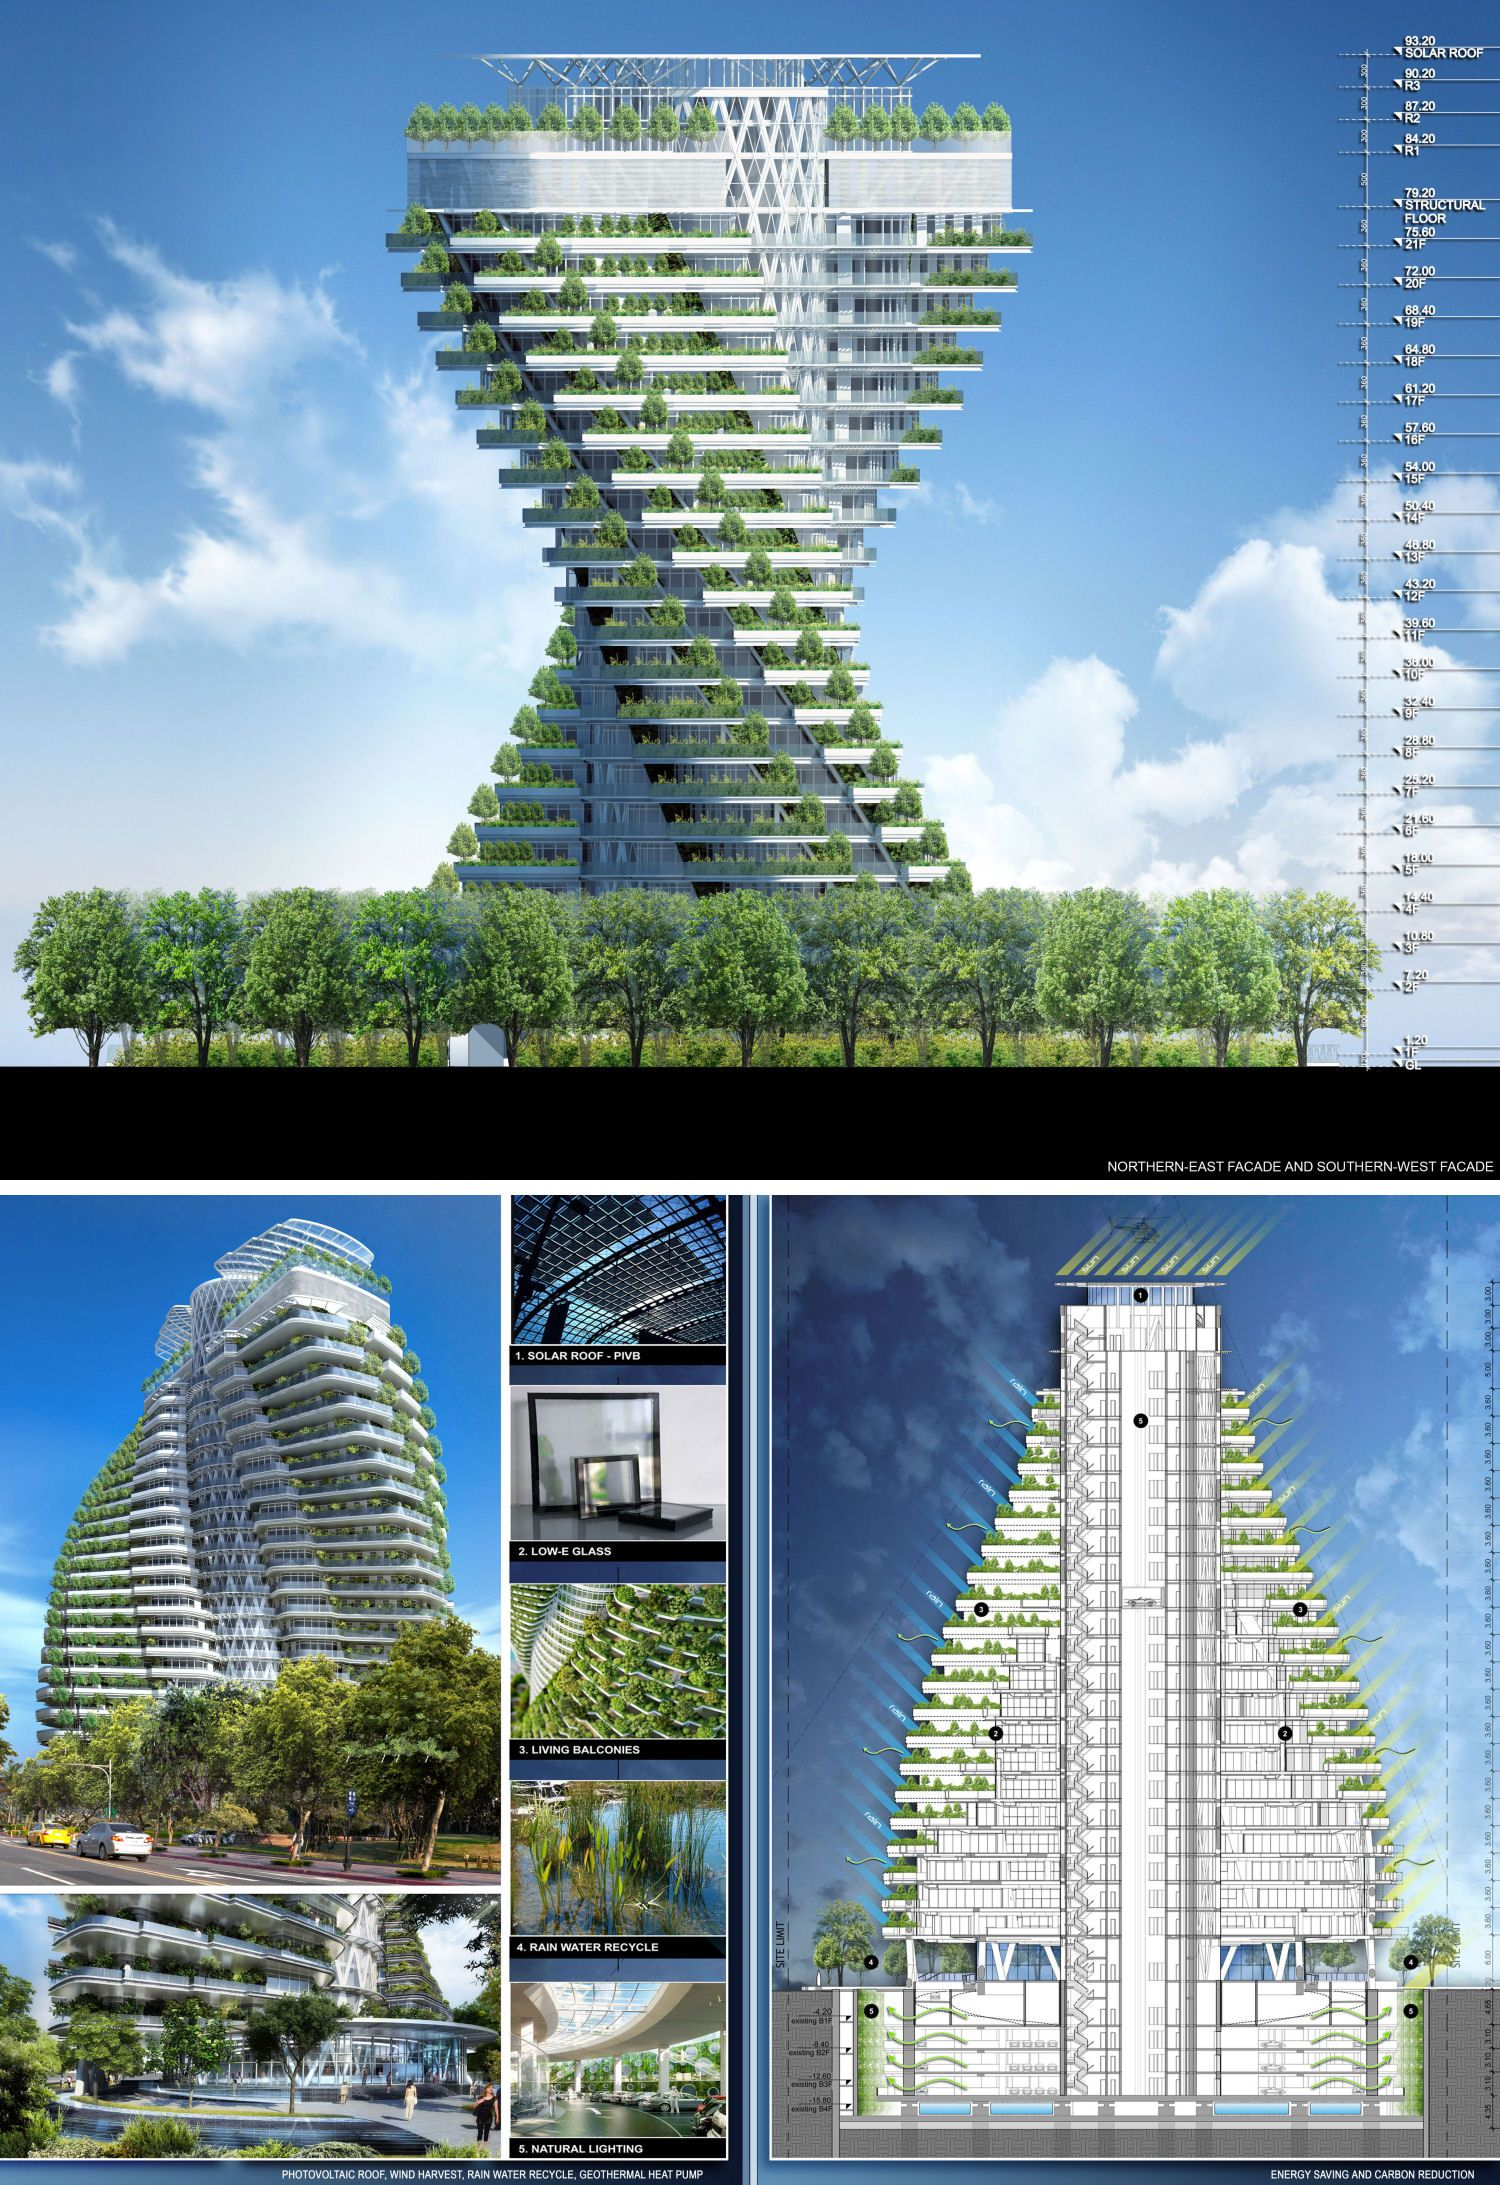 Sustainable Building Agora Garden Vincent Callebaut - 384ft tall apartment will be the worlds first building to be covered in evergreen trees